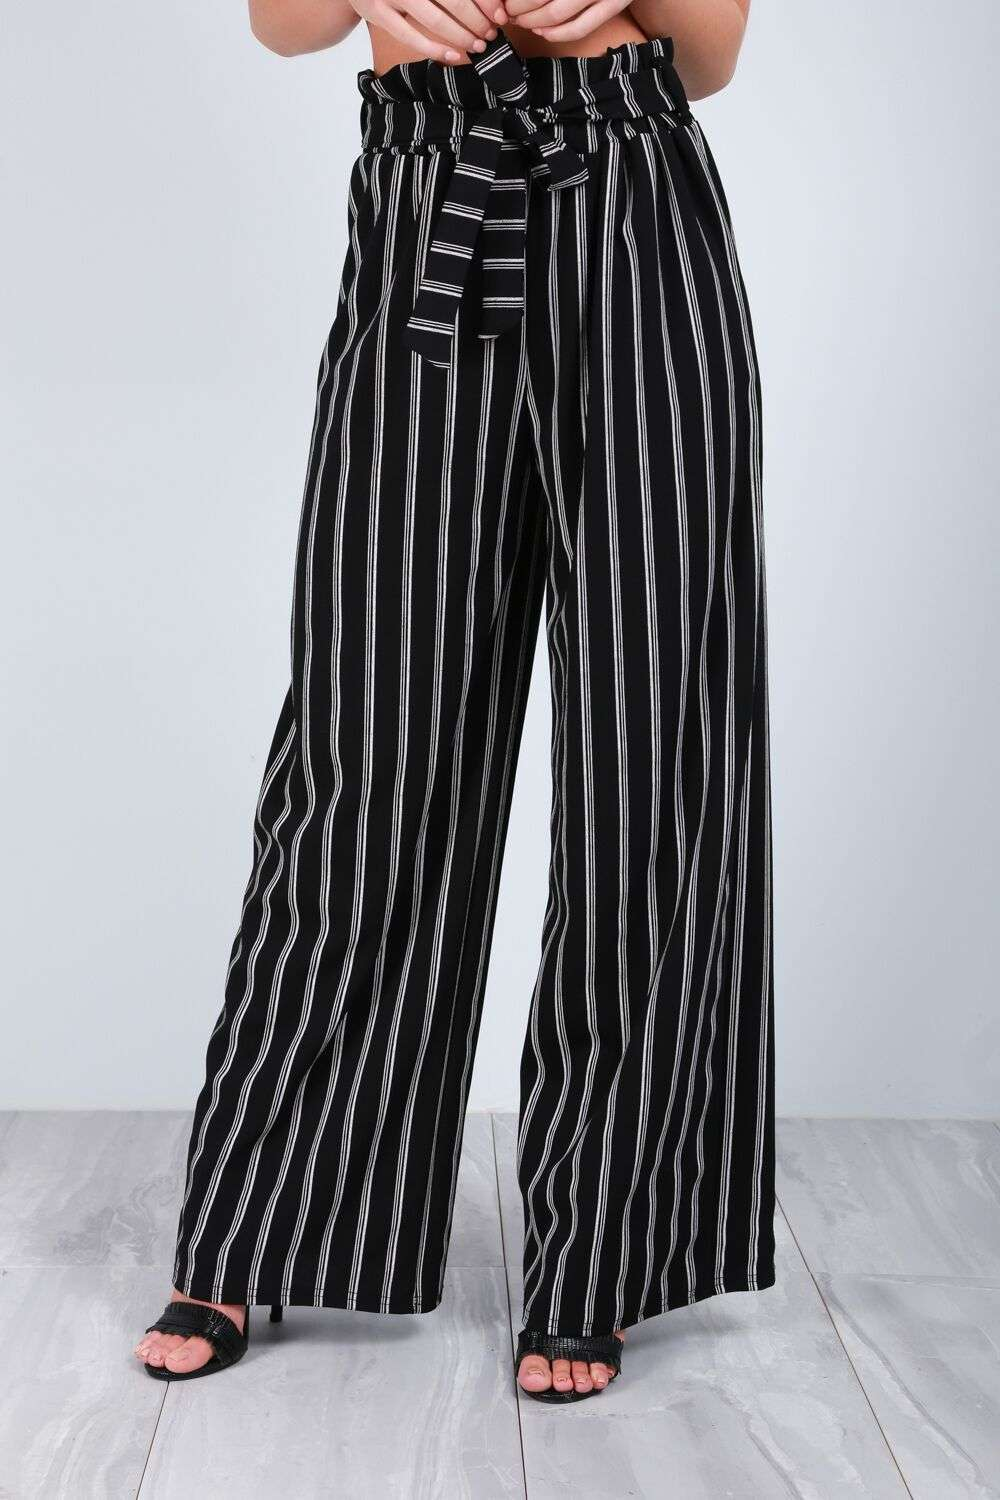 Lillie High Waist Pin Stripe Wide Leg Trousers - bejealous-com